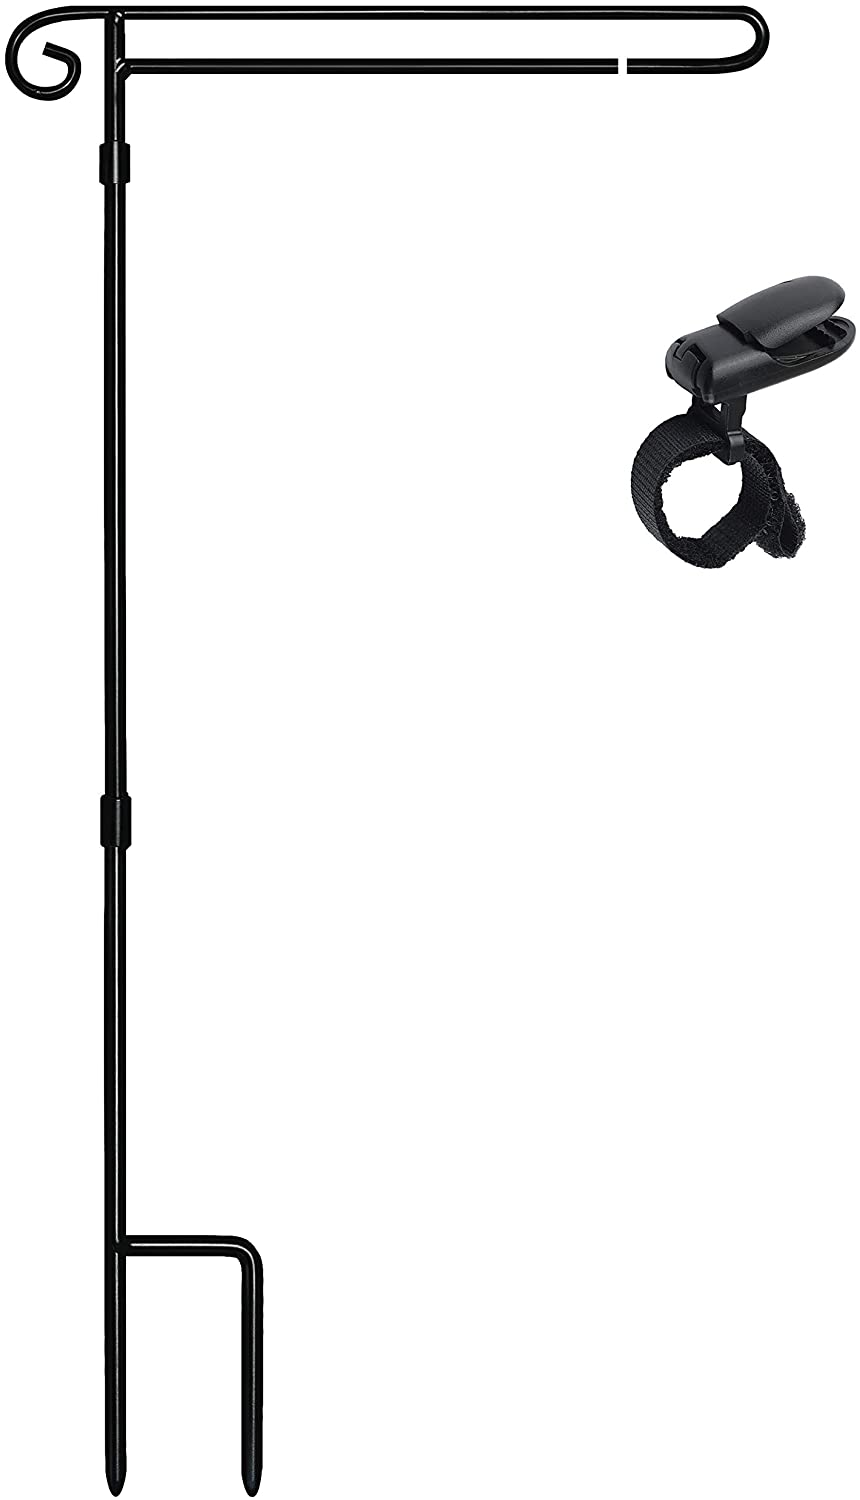 "HOOSUN Garden Flag Stand Holder Easy to Install Strong and Sturdy Wrought Iron Pole Fits Mini Flag 12.5"" x 18"" no Need Extra Accessories to Fixed Flag,Garden Flag Pole Without Flag"